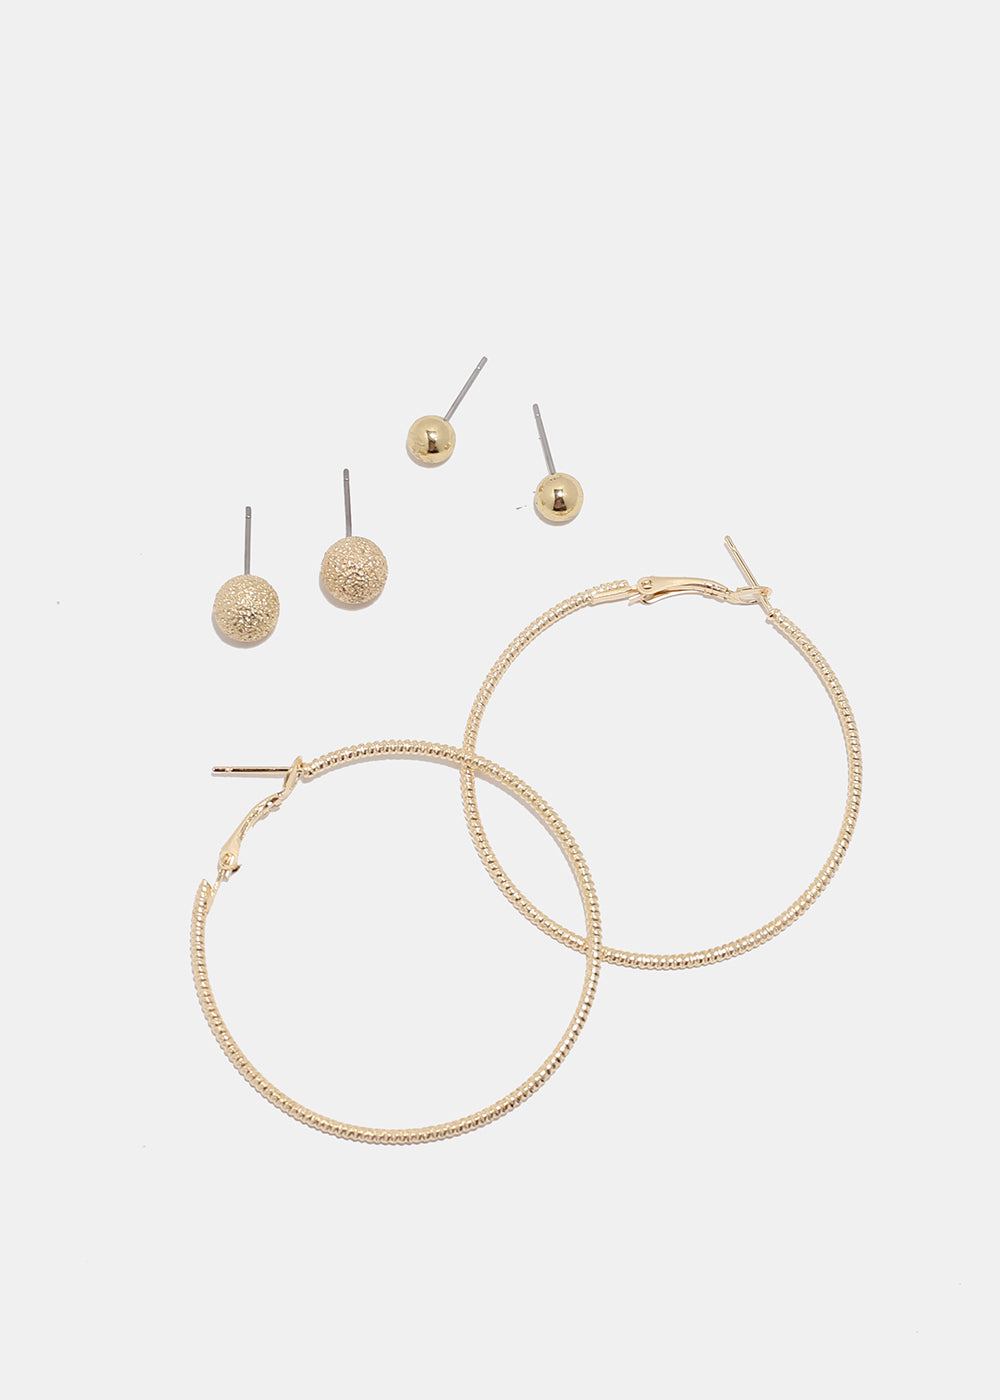 3 Pair Ball & Hoop Earring Set